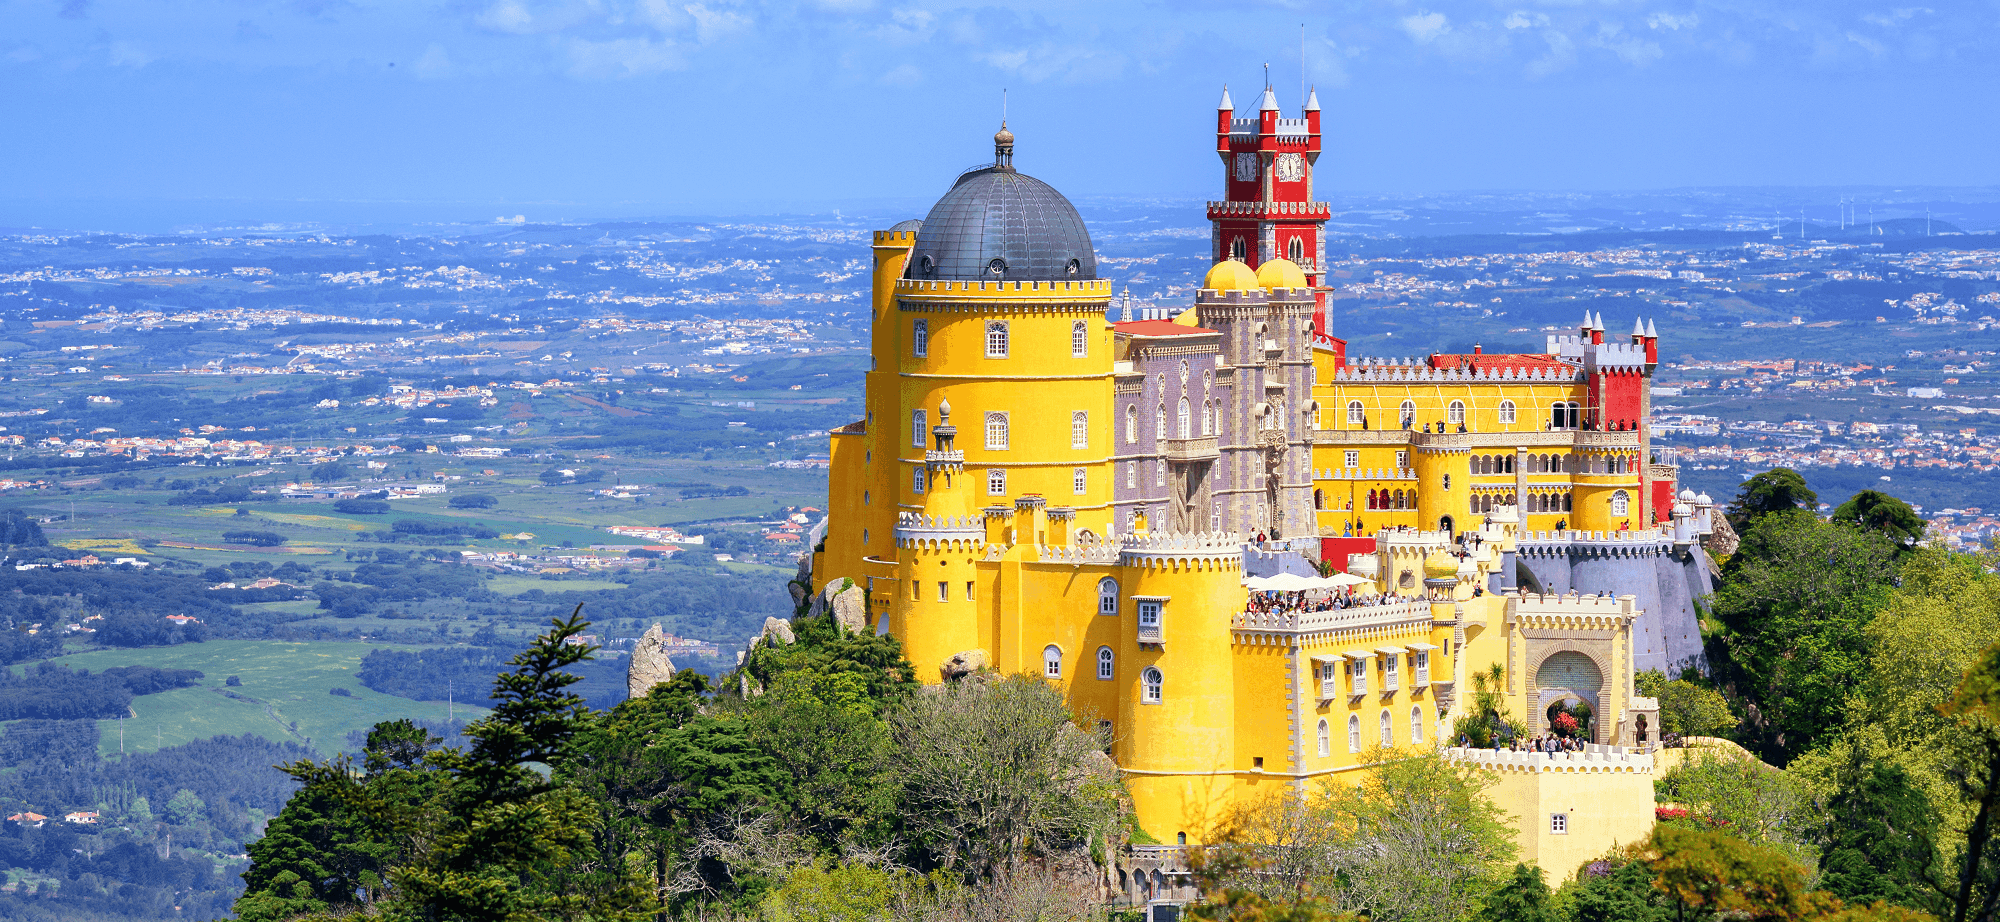 View over Pena Palace, Sintra